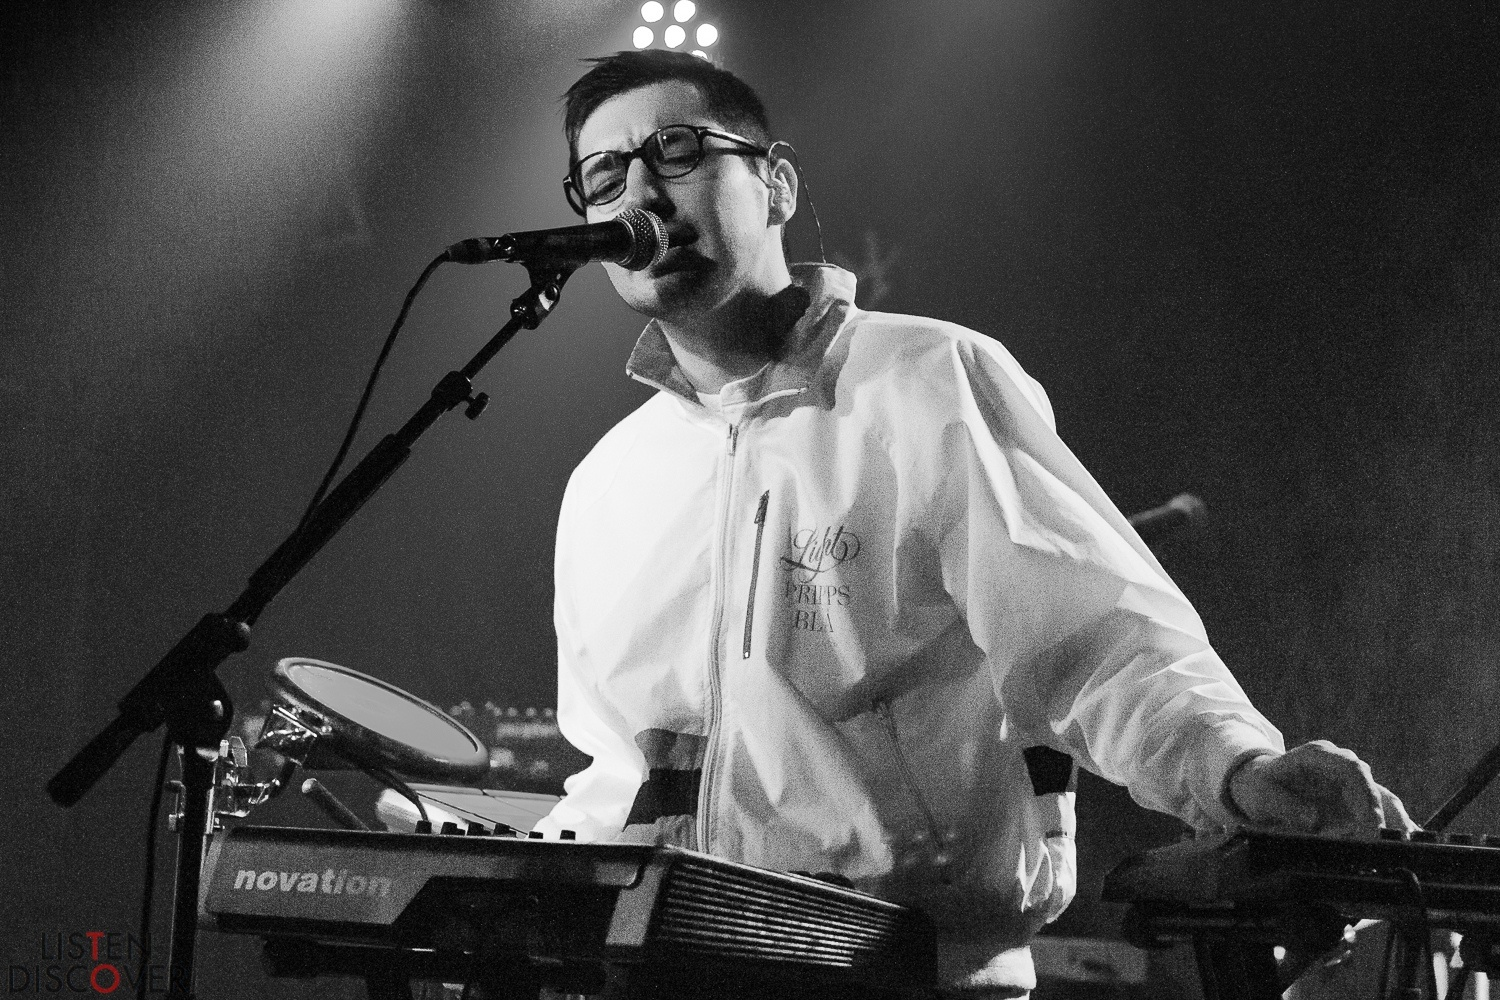 STORME at The Lexington - 6th September 2019